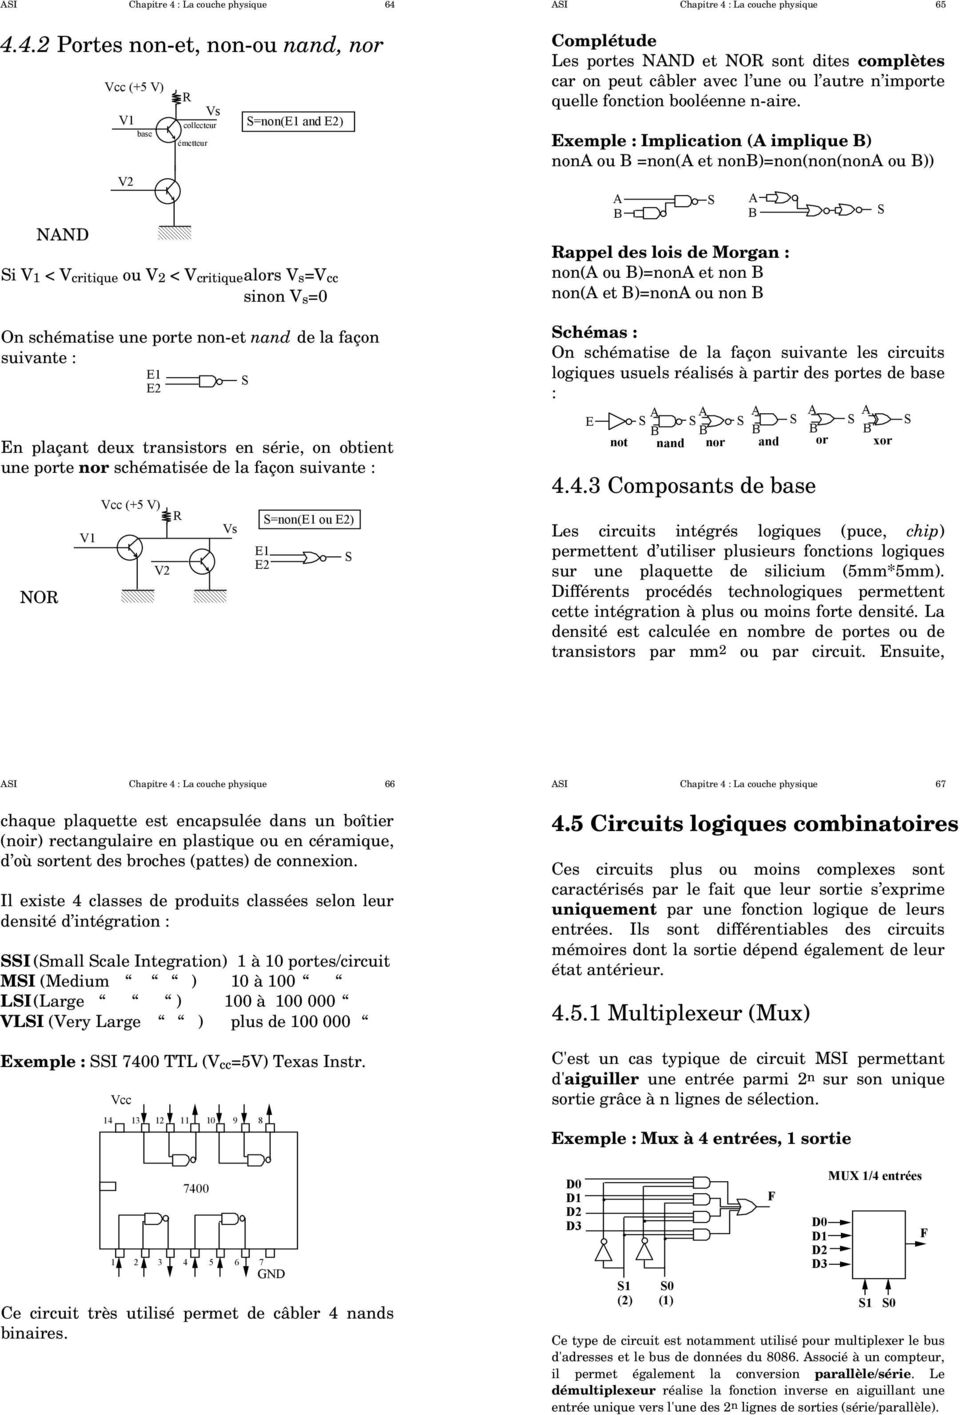 4.4.2 Portes non-et, non-ou nand, nor NAND Vcc (+ V) V1 V2 base R Vs collecteur S=non(E1 and E2) émetteur Si V 1 < V critique ou V 2 < V critique alors V s =V cc sinon V s =0 On schématise une porte